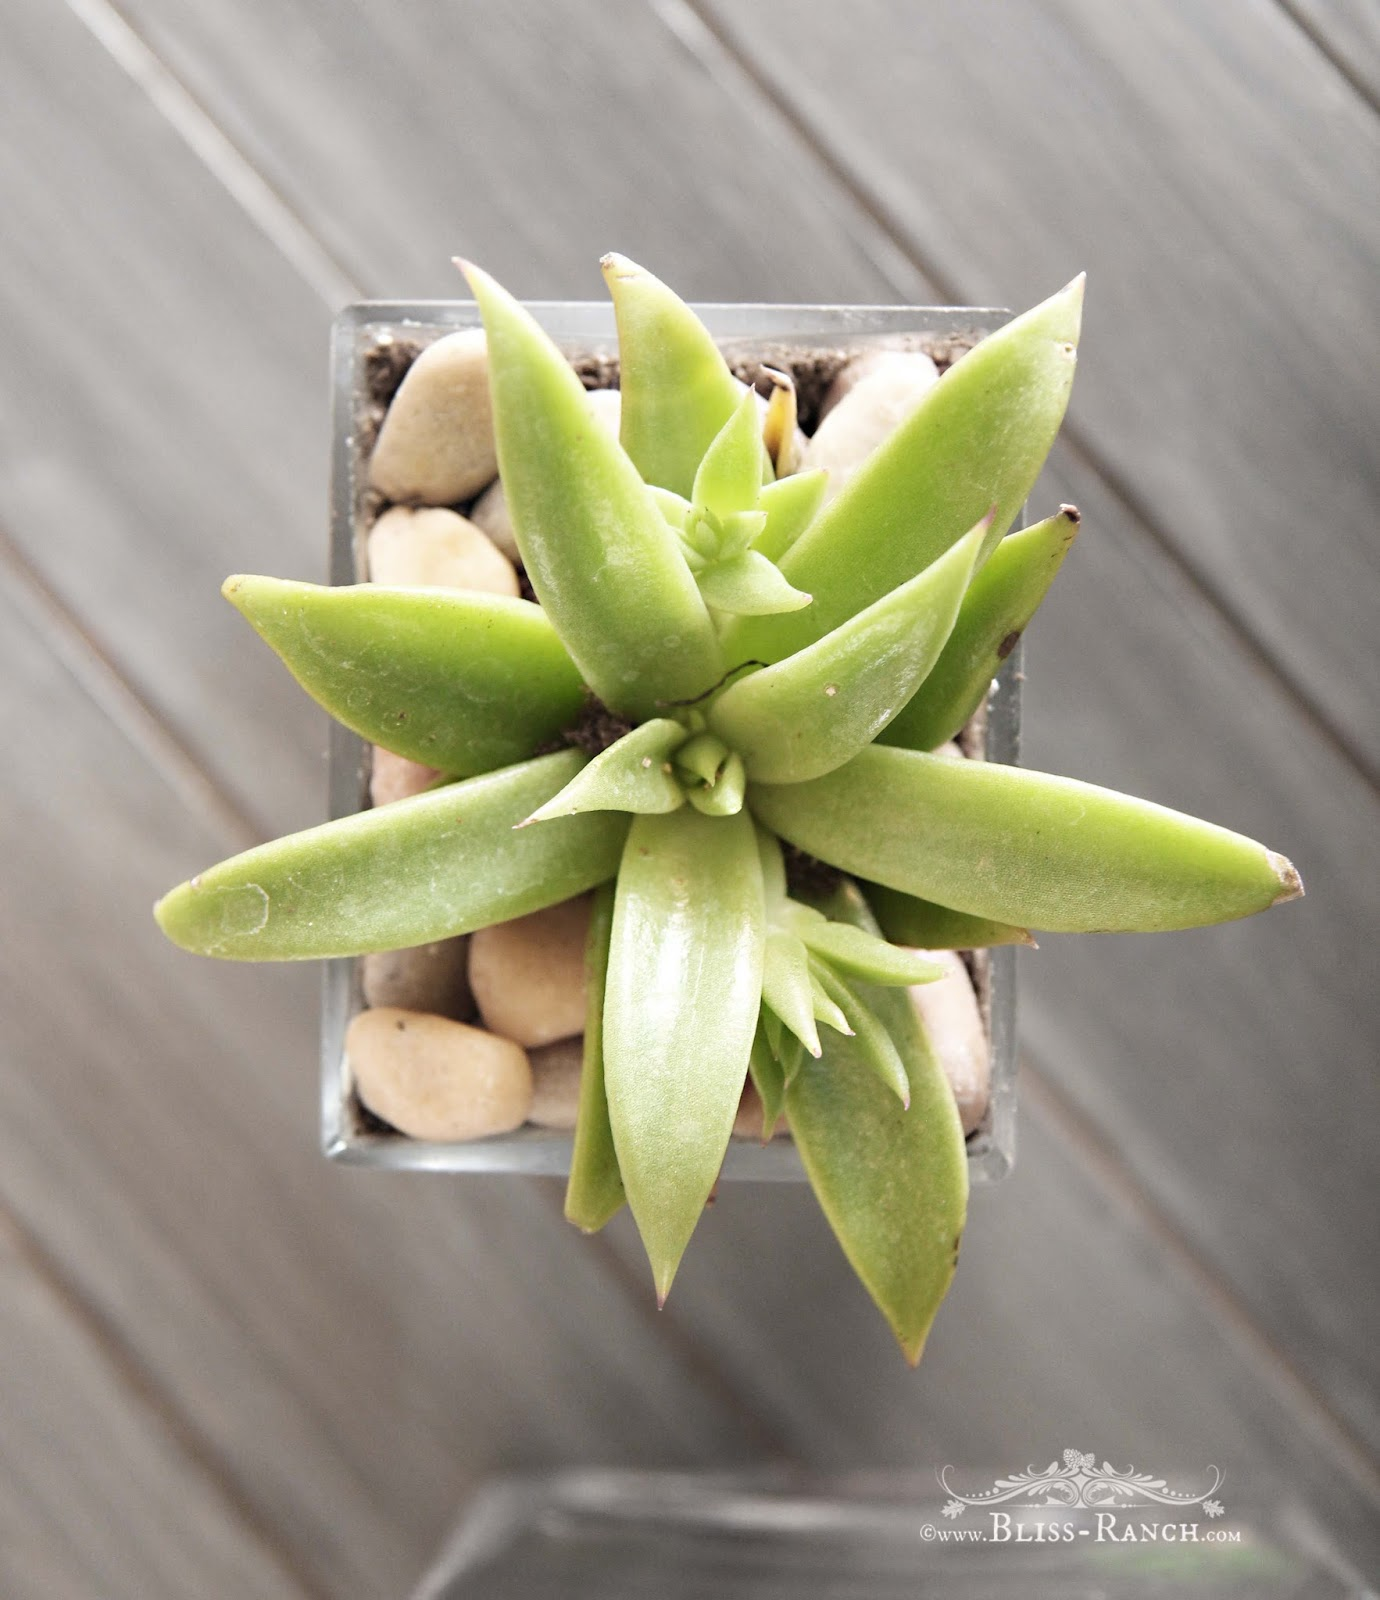 Succulents in Goodwill Vases, Bliss-Ranch.com